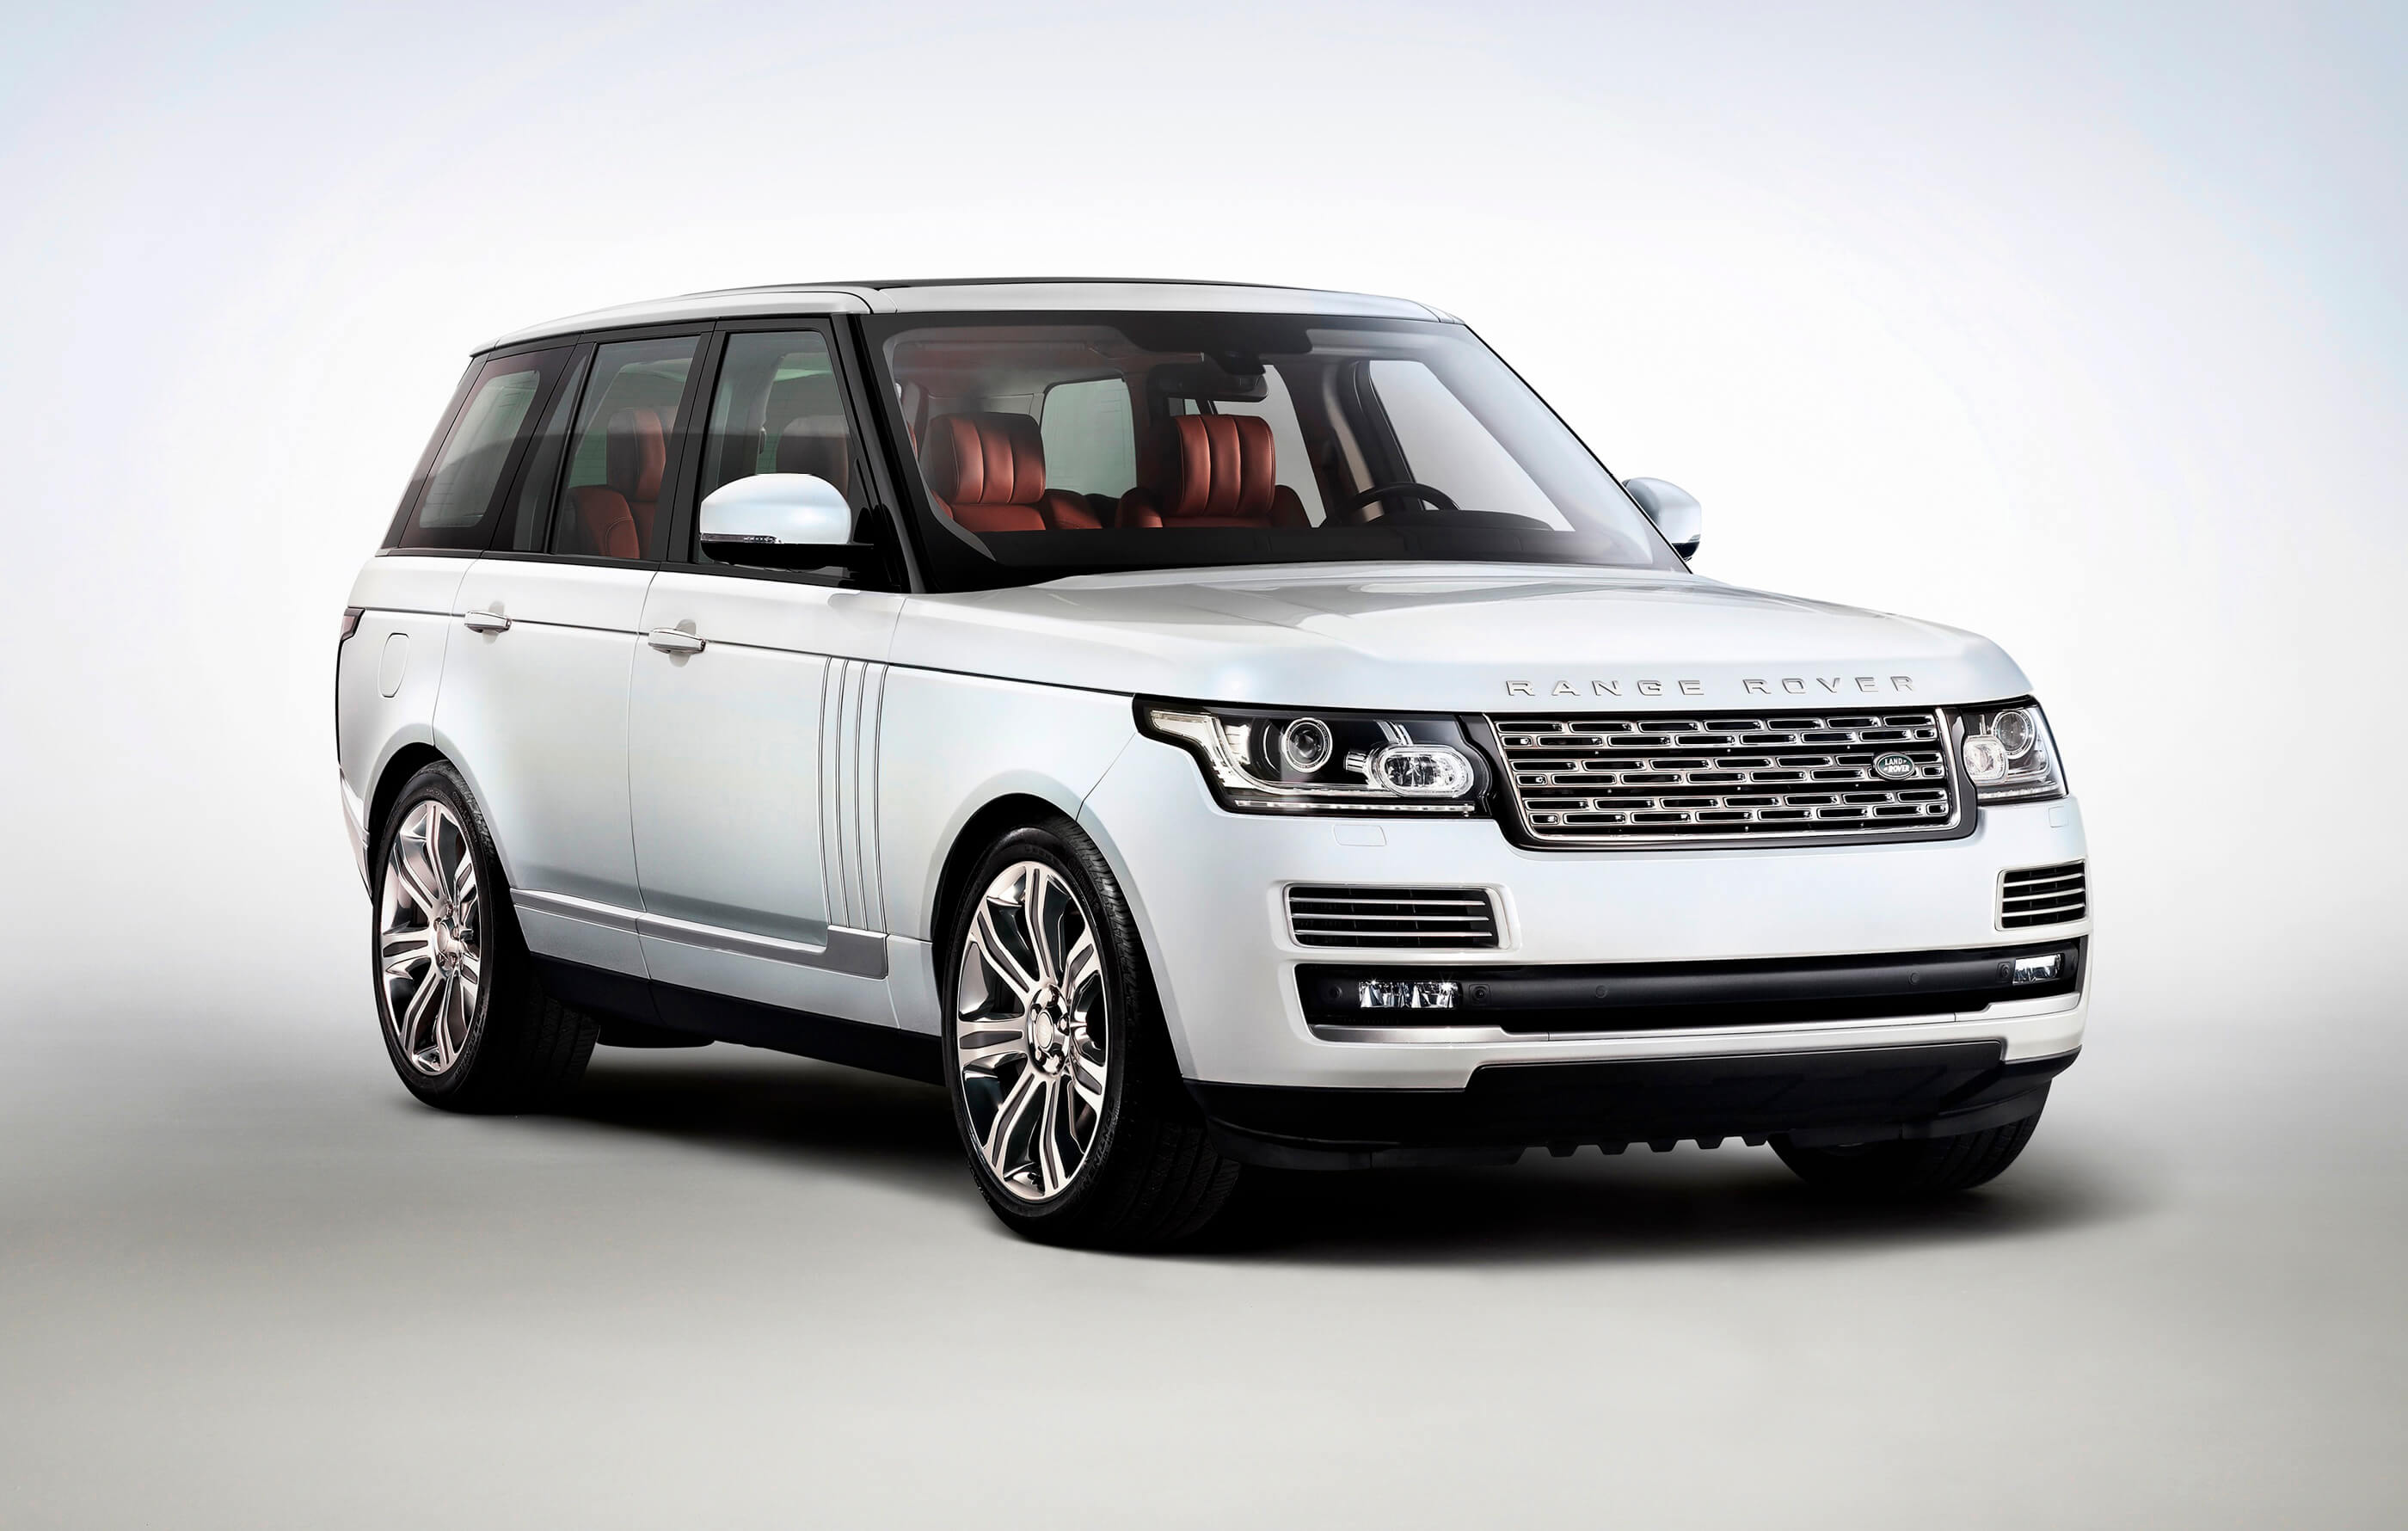 Full screen image of a white Land Rover Range Rover, with red leather interior on a white and grey background